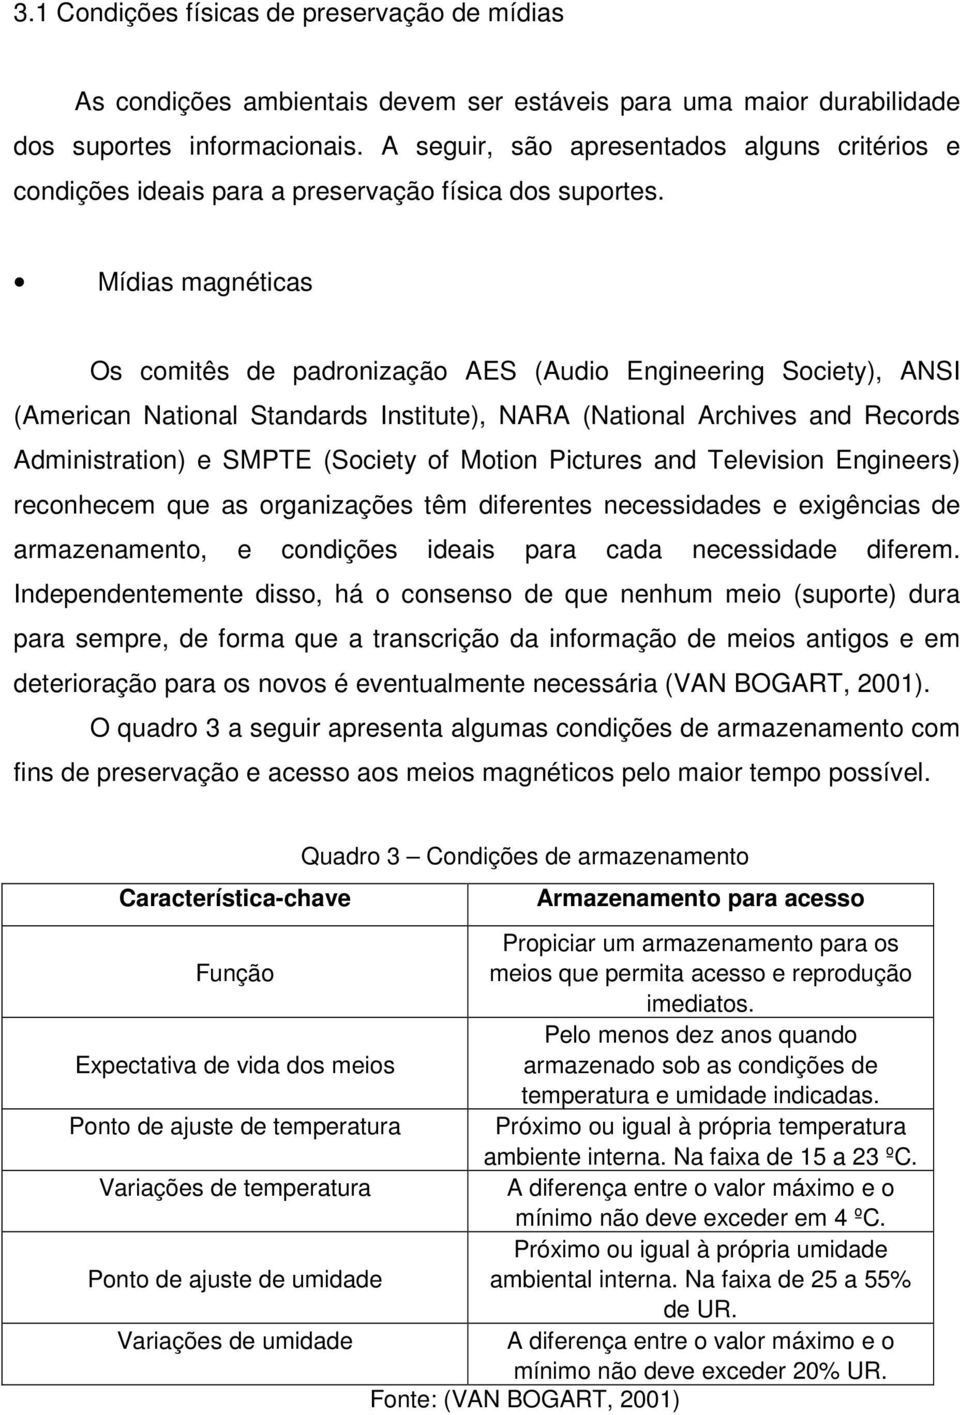 Mídias magnéticas Os comitês de padronização AES (Audio Engineering Society), ANSI (American National Standards Institute), NARA (National Archives and Records Administration) e SMPTE (Society of